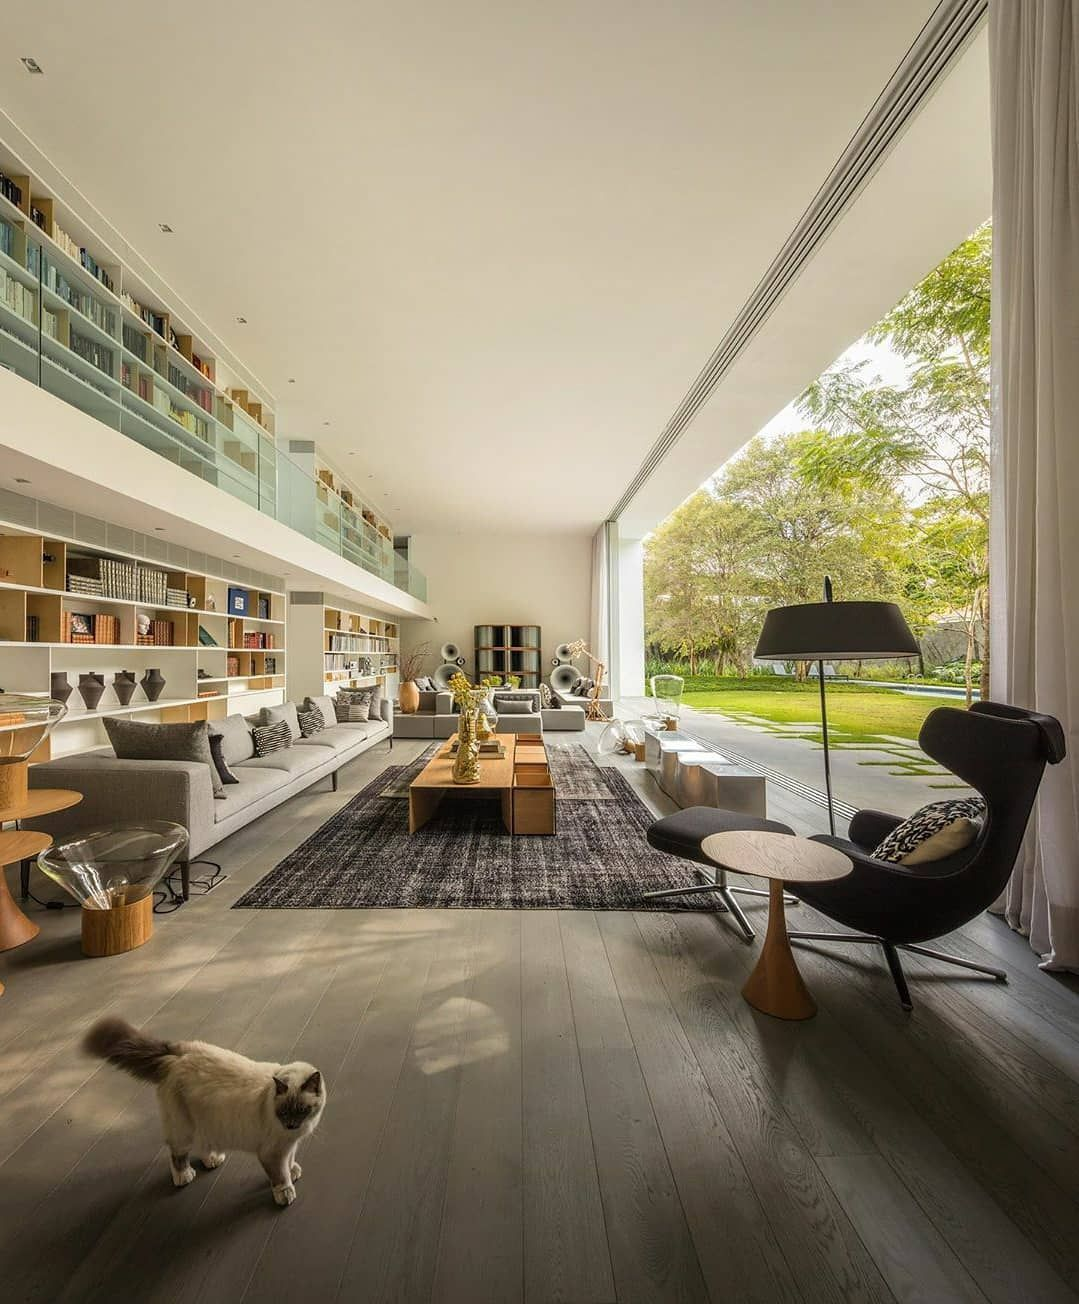 The Gama Issa V2 0 Home Sao Paulo Brazil 1080 X 1350 Check Out Desigedecors Com To Get More Inspiration Interior In 2020 Open Living Room Indoor Outdoor Living Home